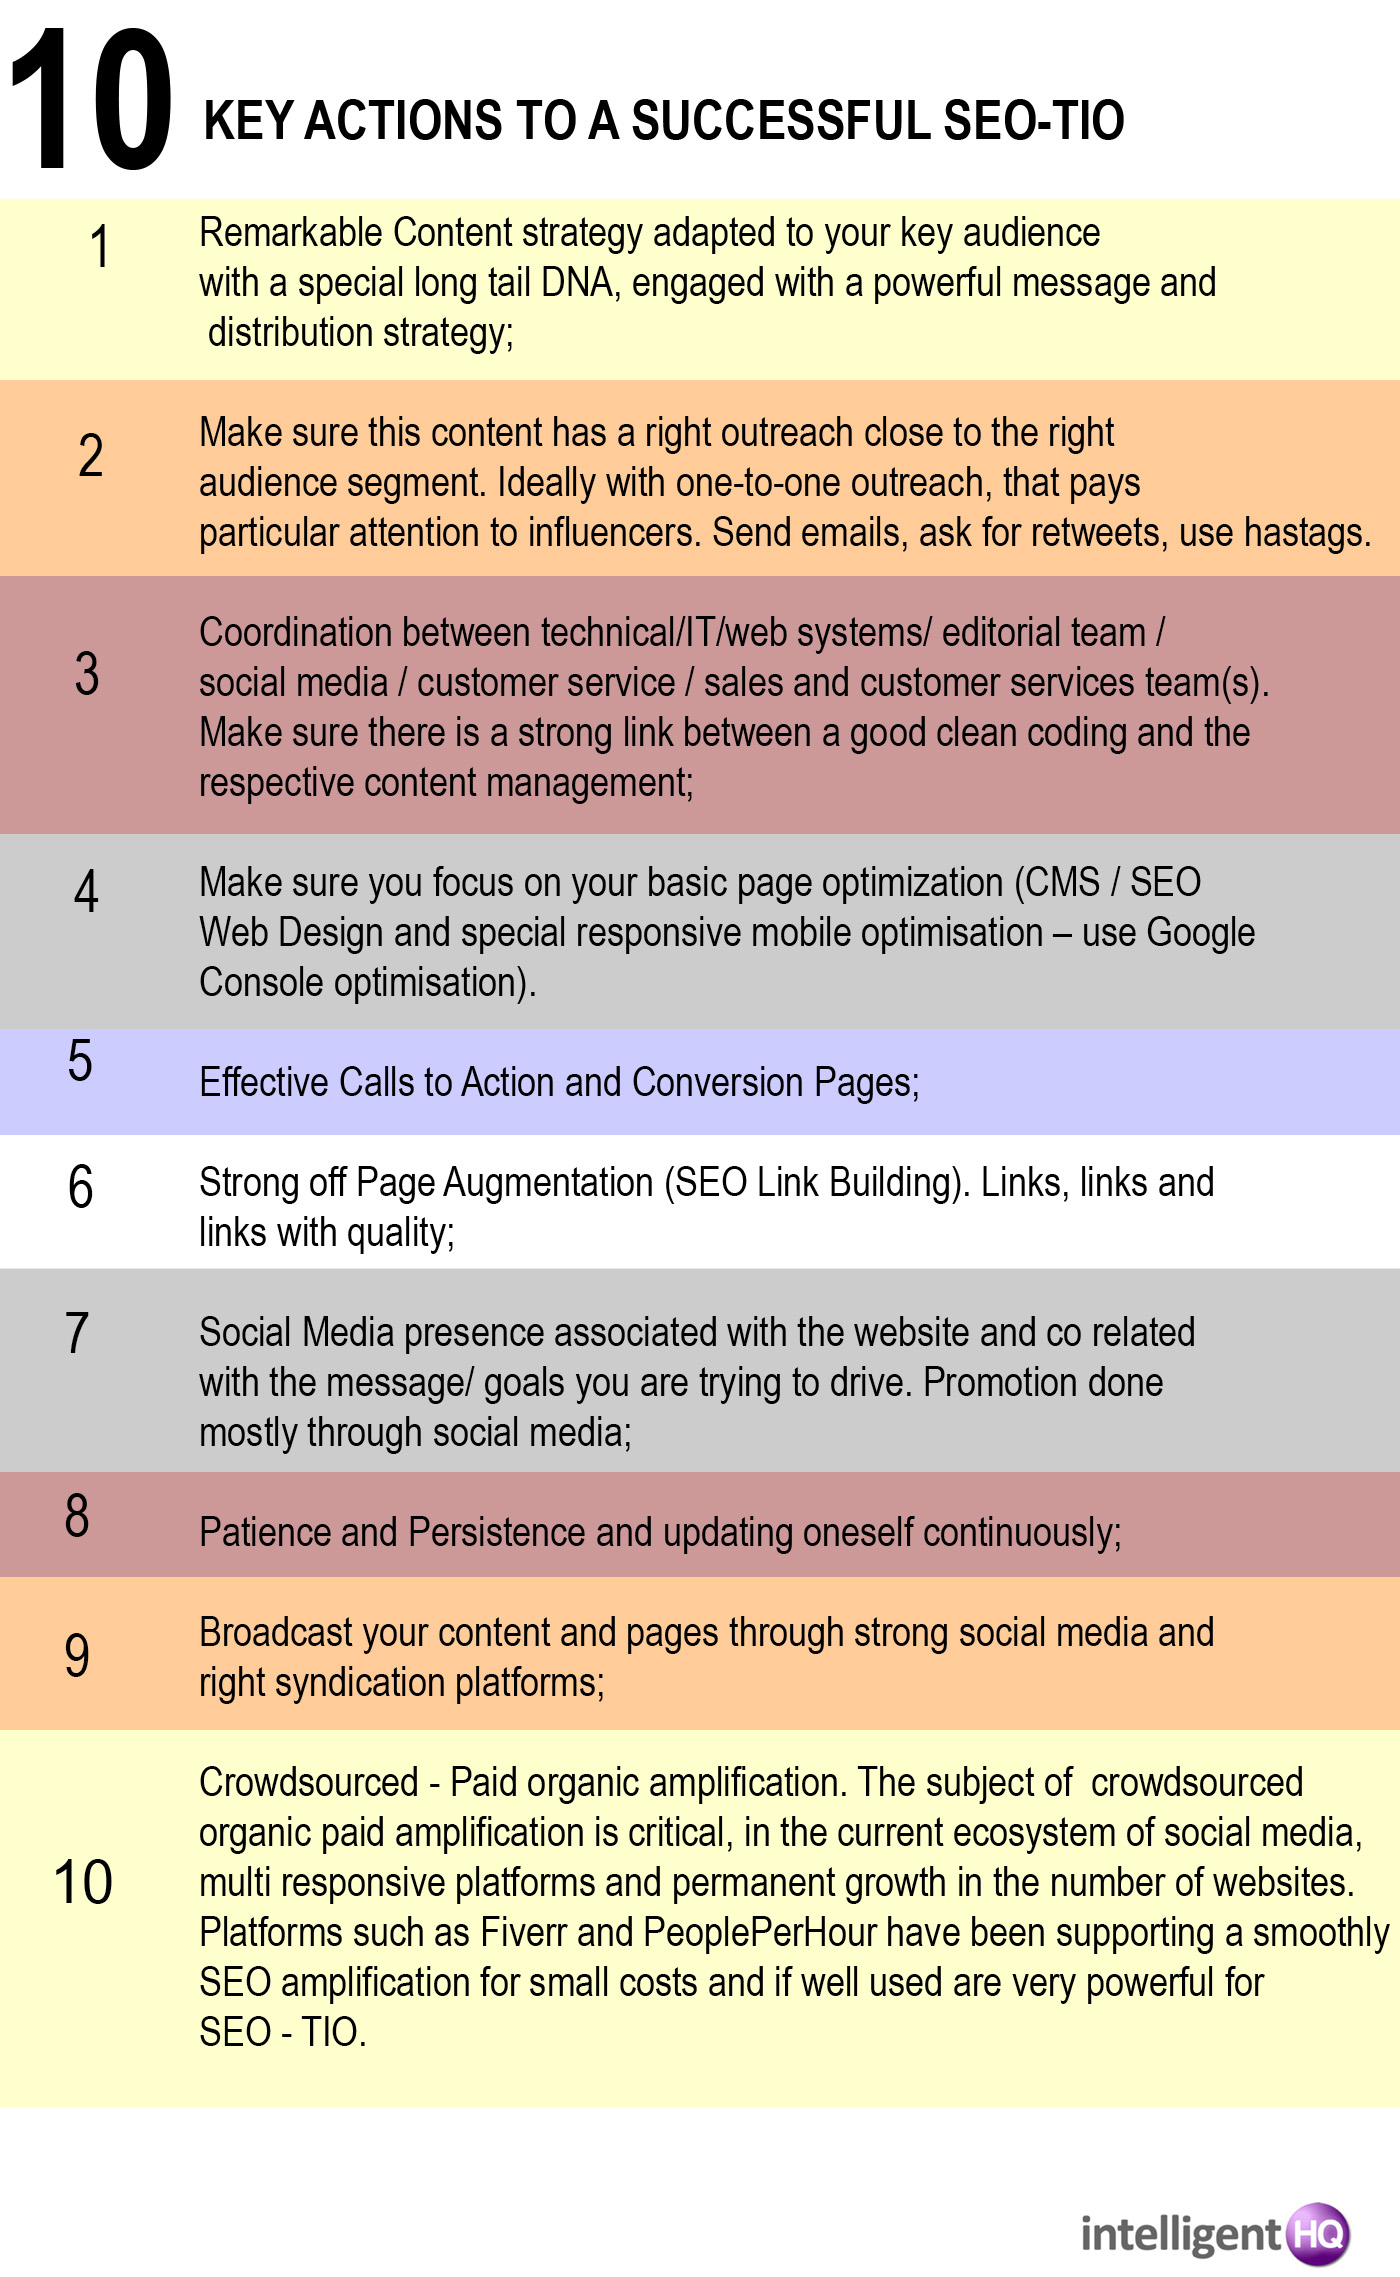 10 key actions to a successful SEO-TIO Infographic by Maria Lusitano